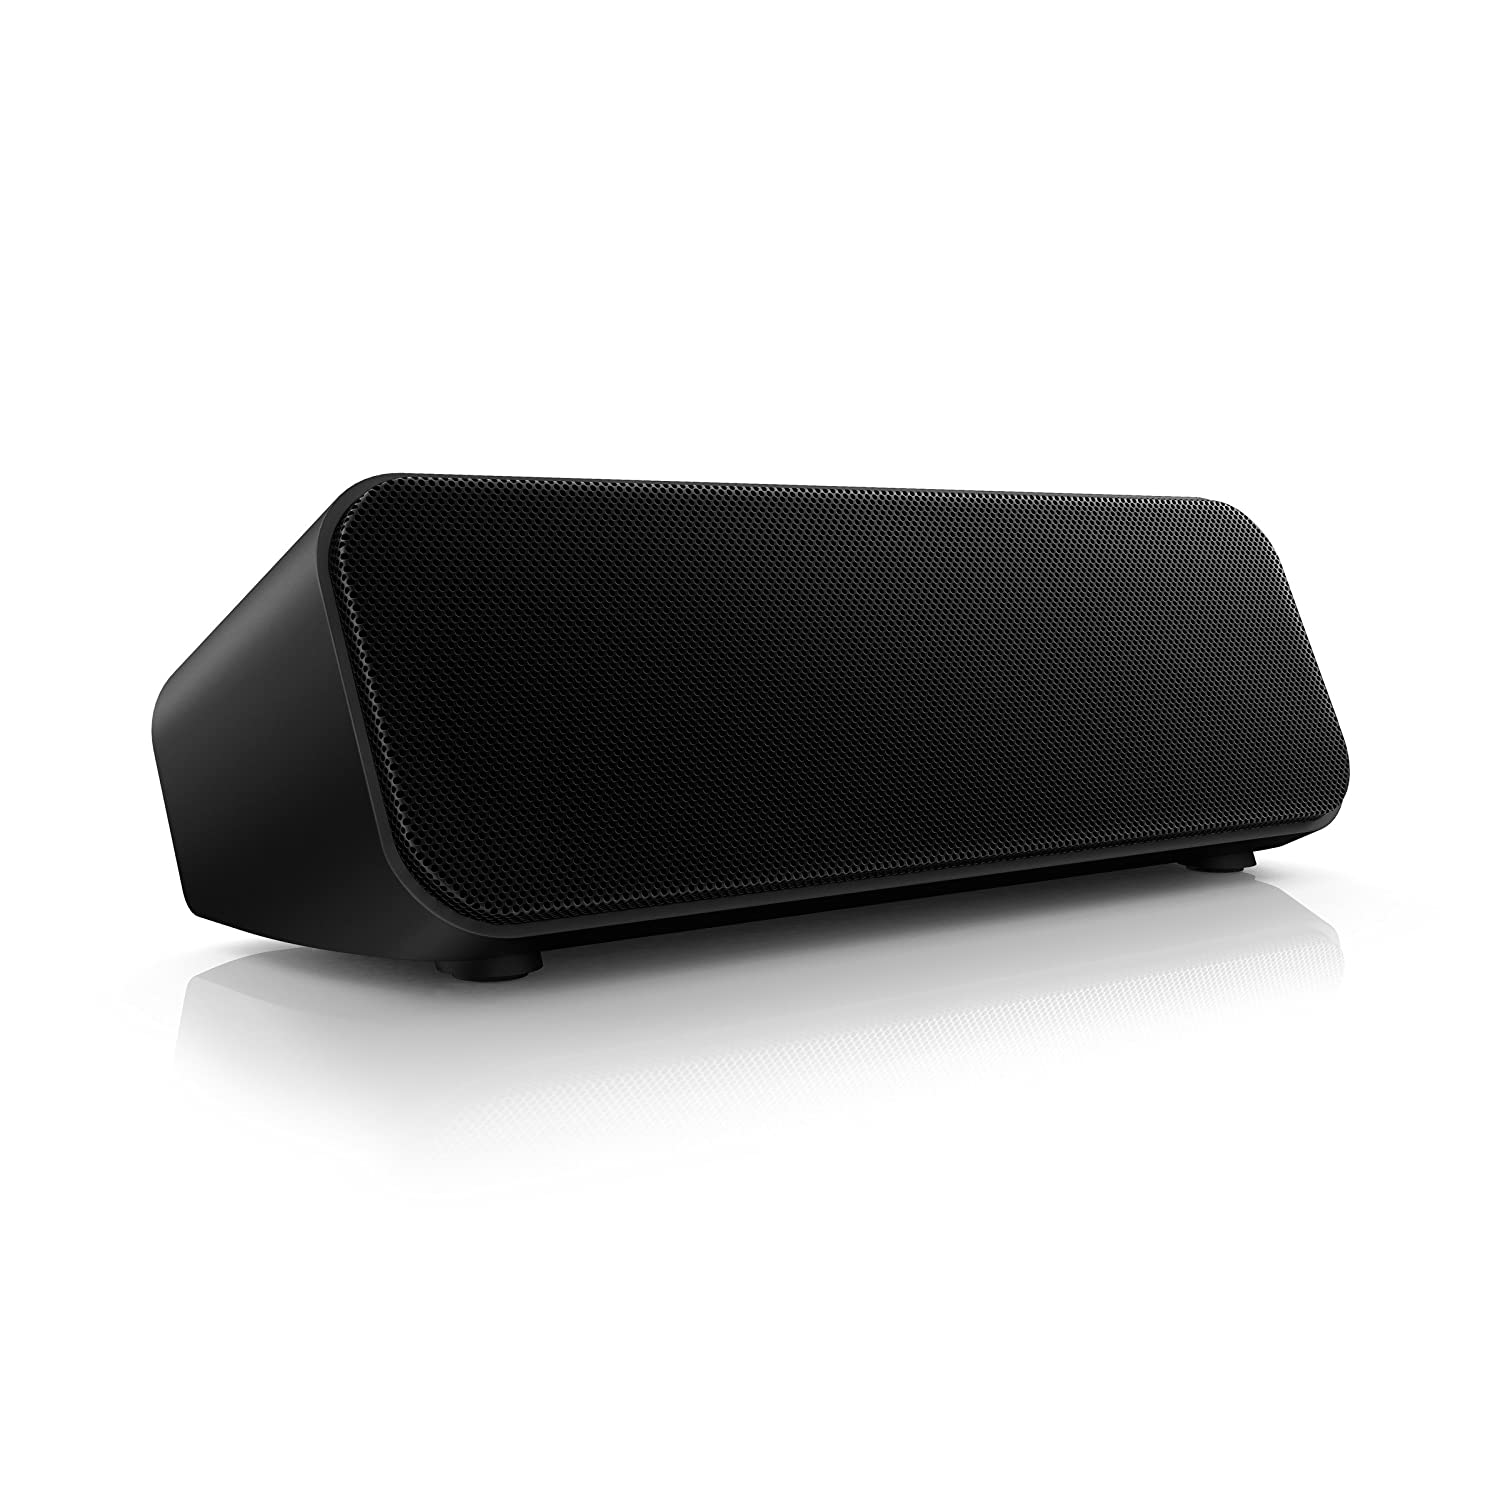 philips sb3700 enceinte bluetooth avec amplification des basses 16 w noir audio hifi. Black Bedroom Furniture Sets. Home Design Ideas